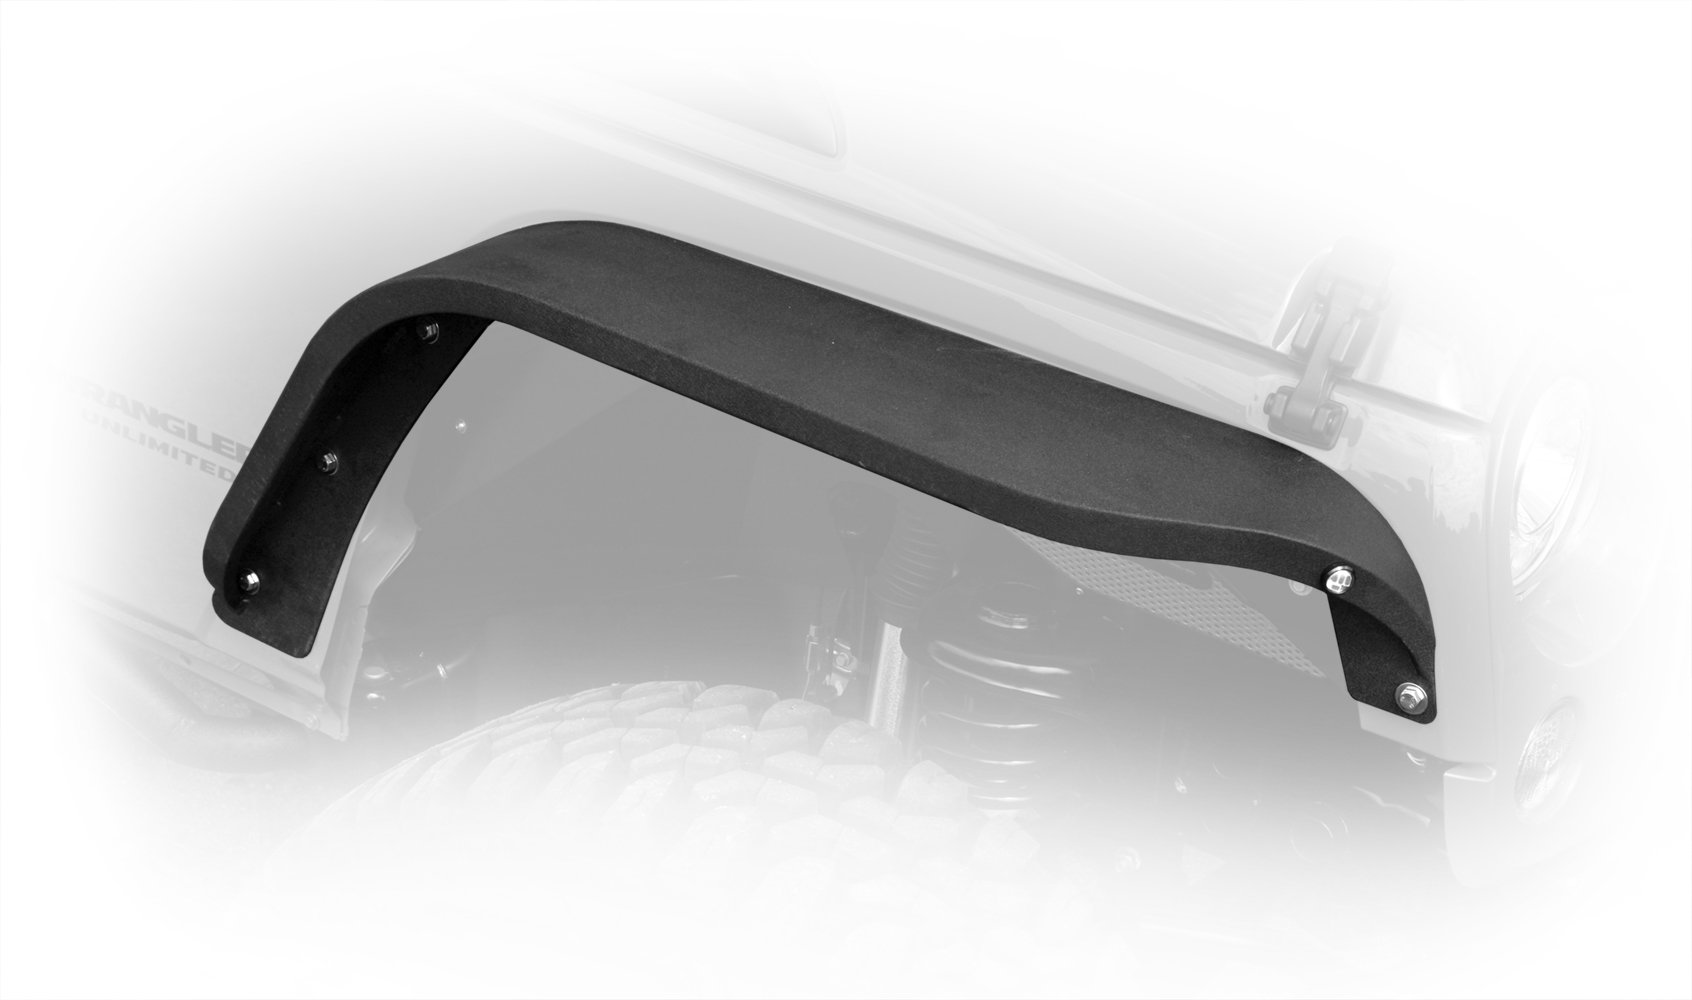 Jeep JK Slim Fenders Front and Rear 07-18 Wrangler JK DV8 Offroad